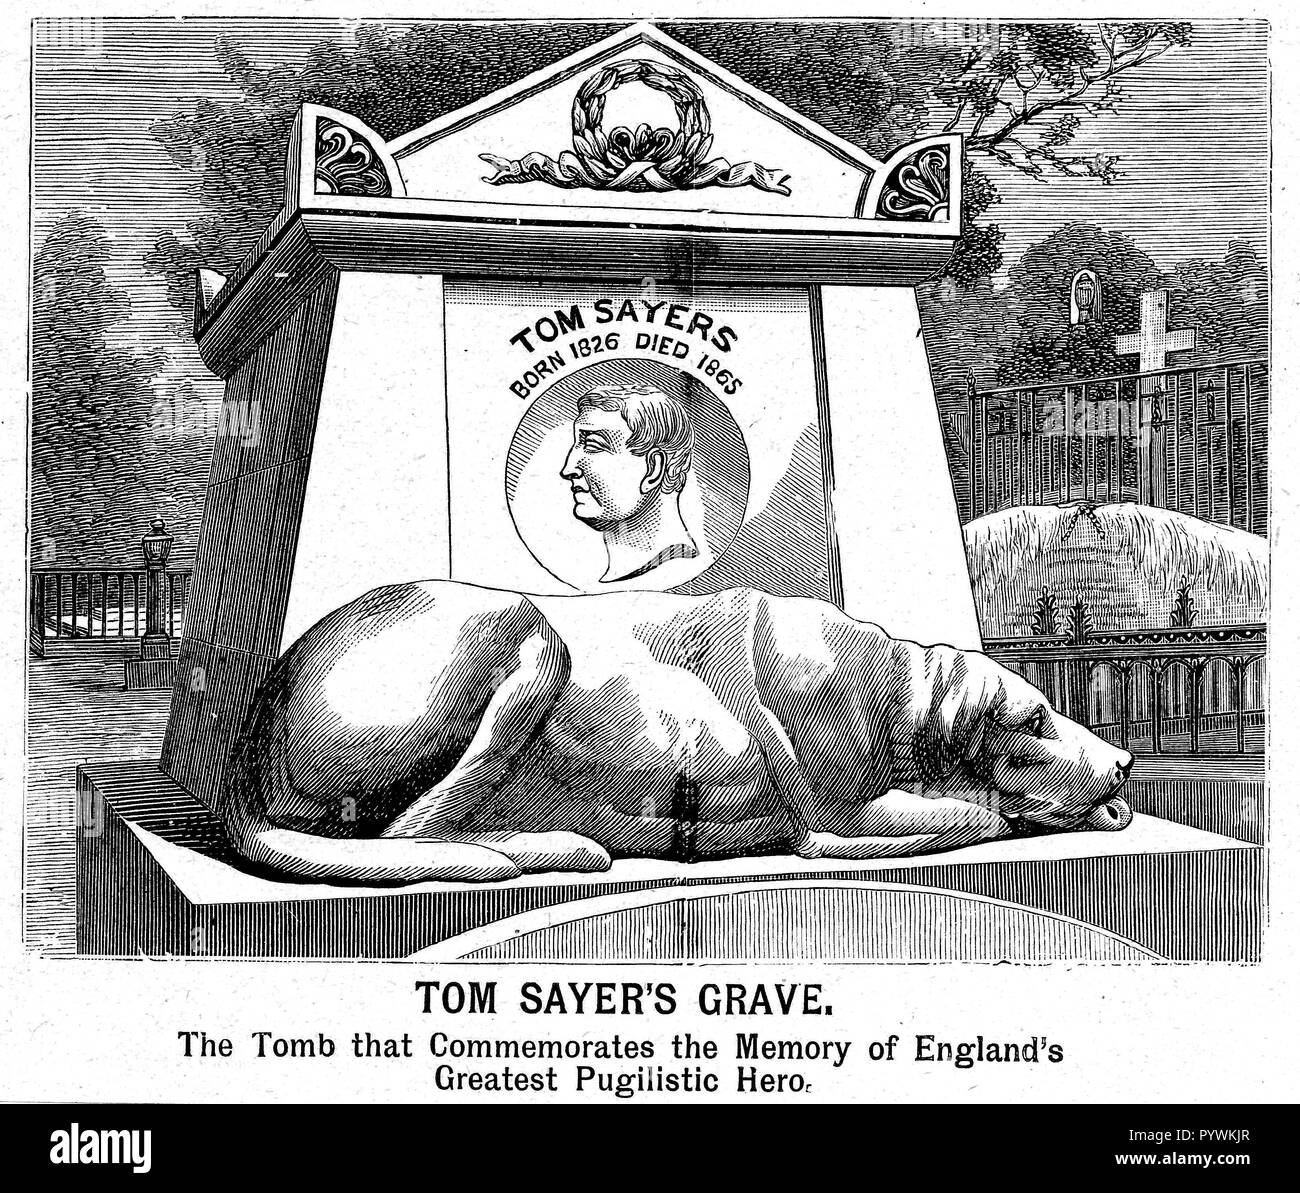 Illustration of the grave of Tom Sayers (1826-1865) British Bare Knuckle Boxing Champion, at Highgate Cemetery, London with statue of his dog, Lion. - Stock Image